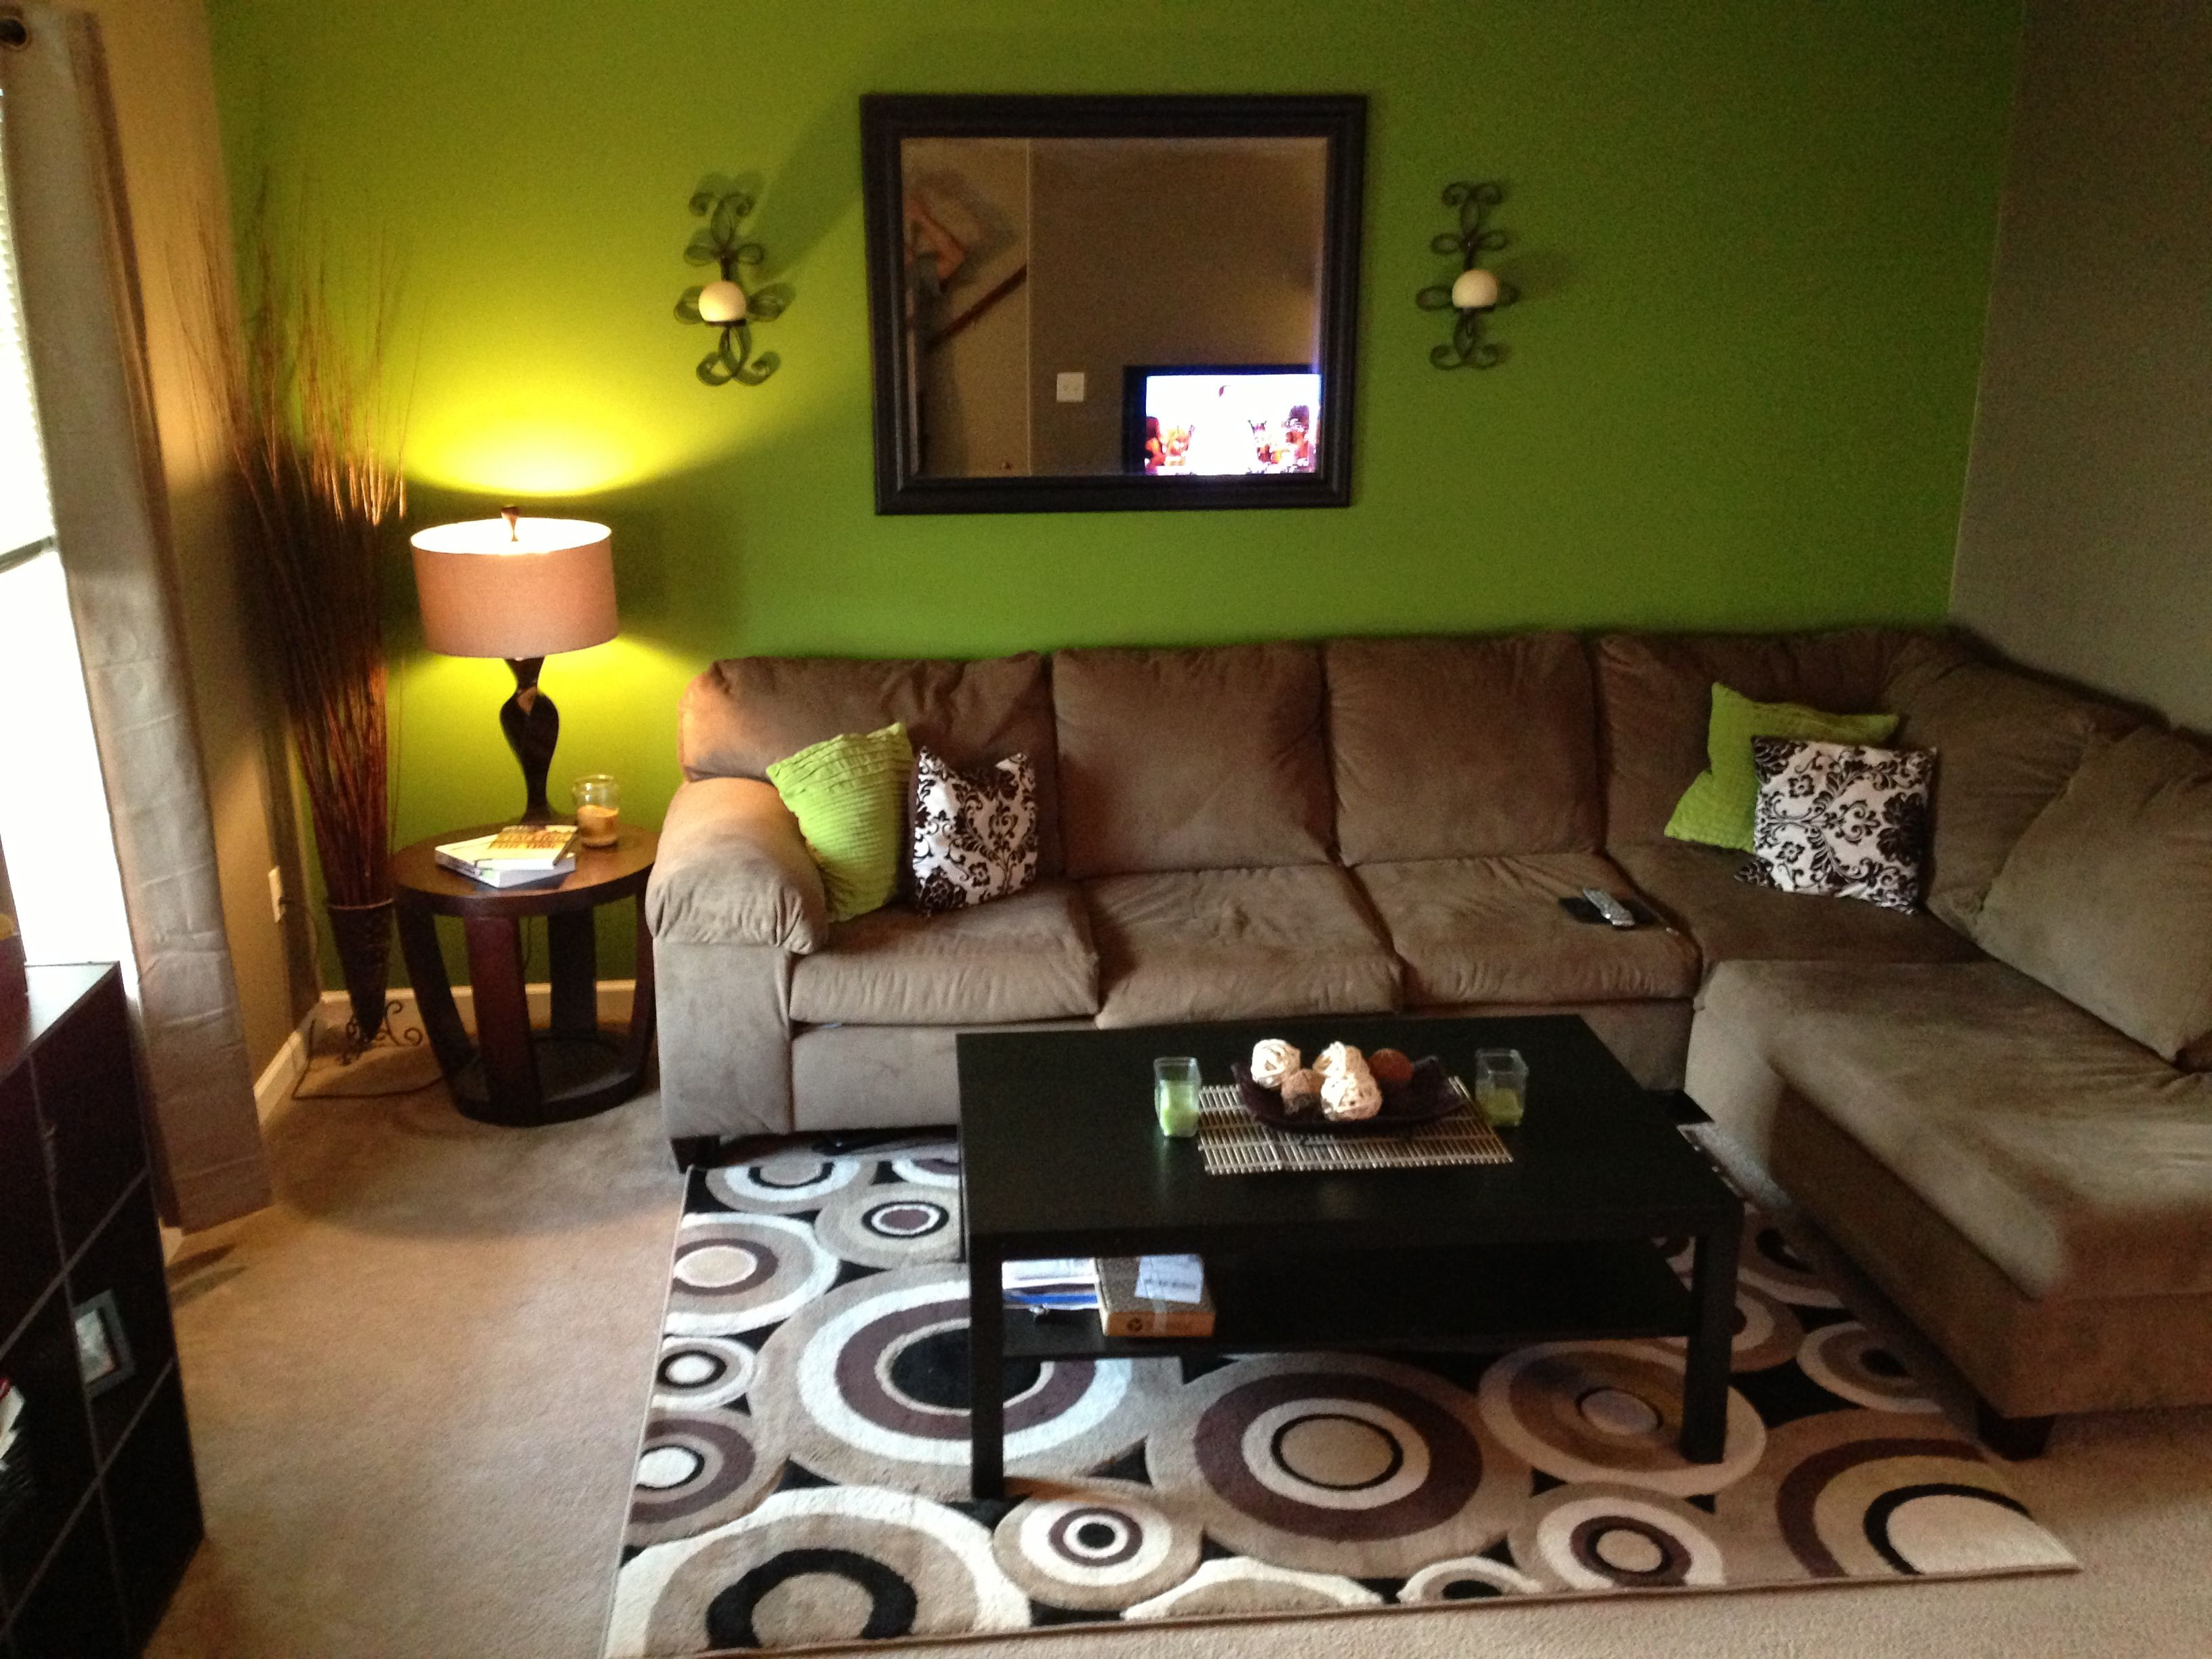 Green and brown living room | Apartment touch up | Living room green ...